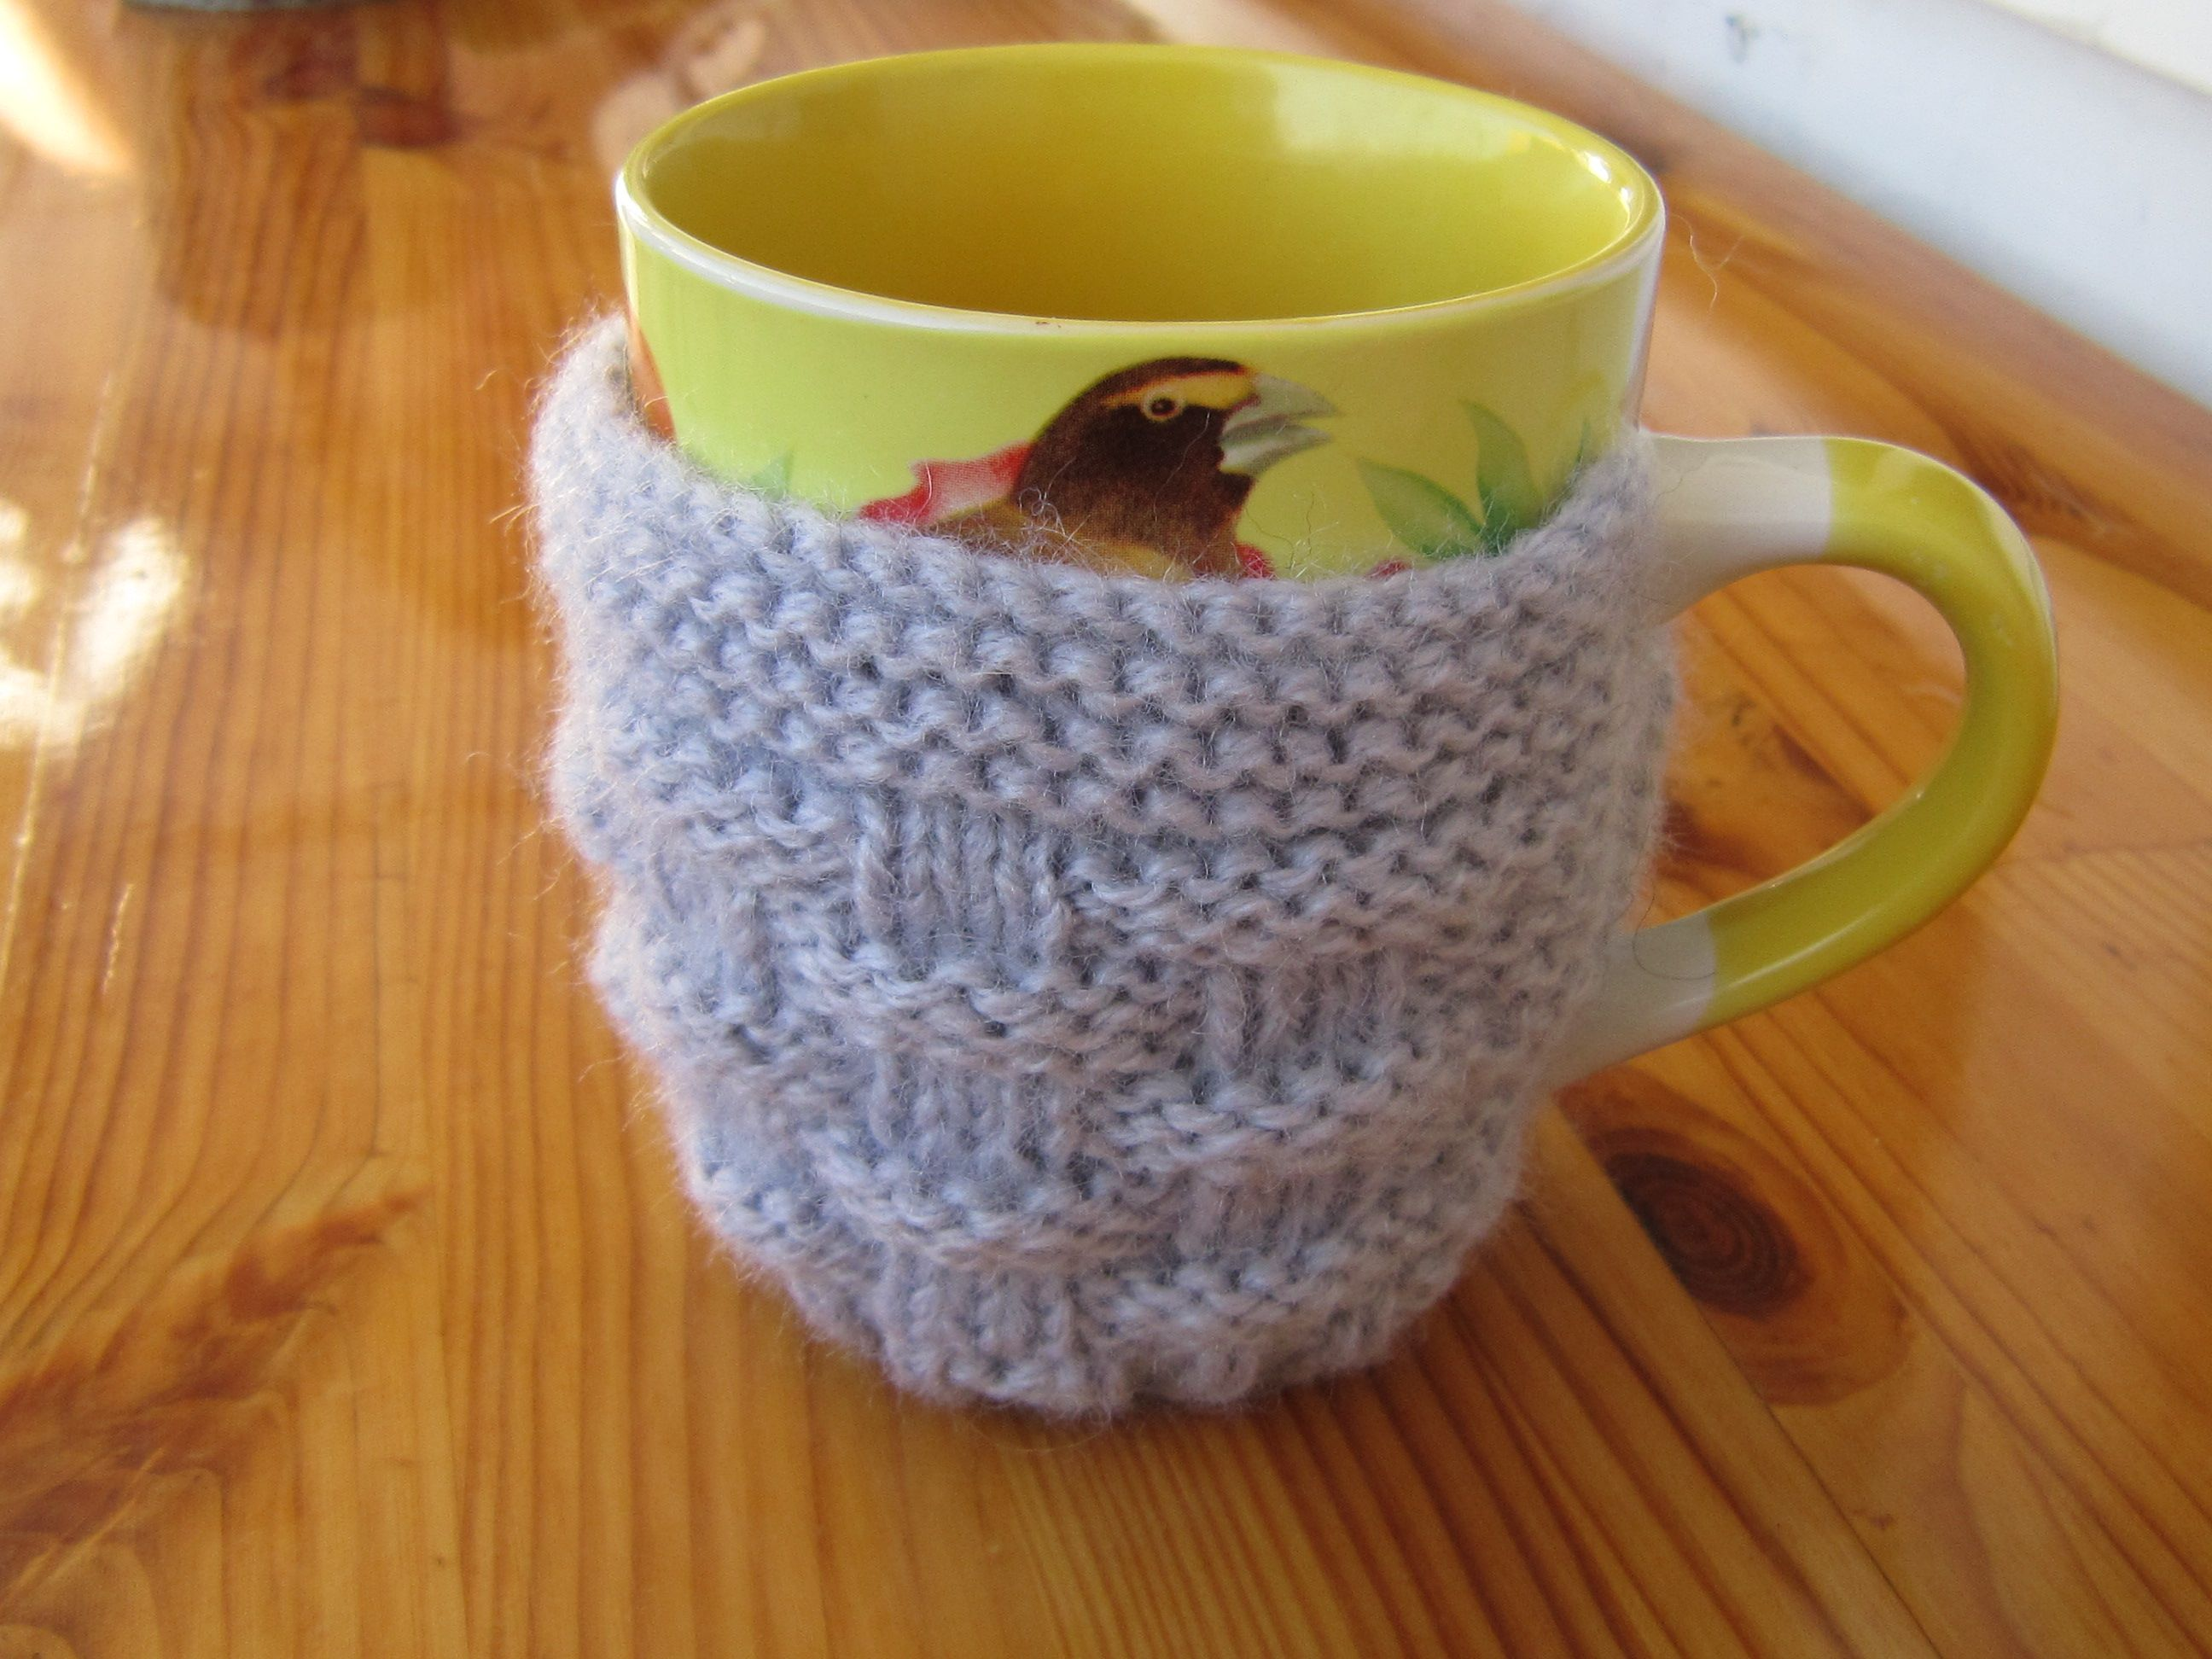 The gray coffee mug cozy is a great idea as kitchen gift